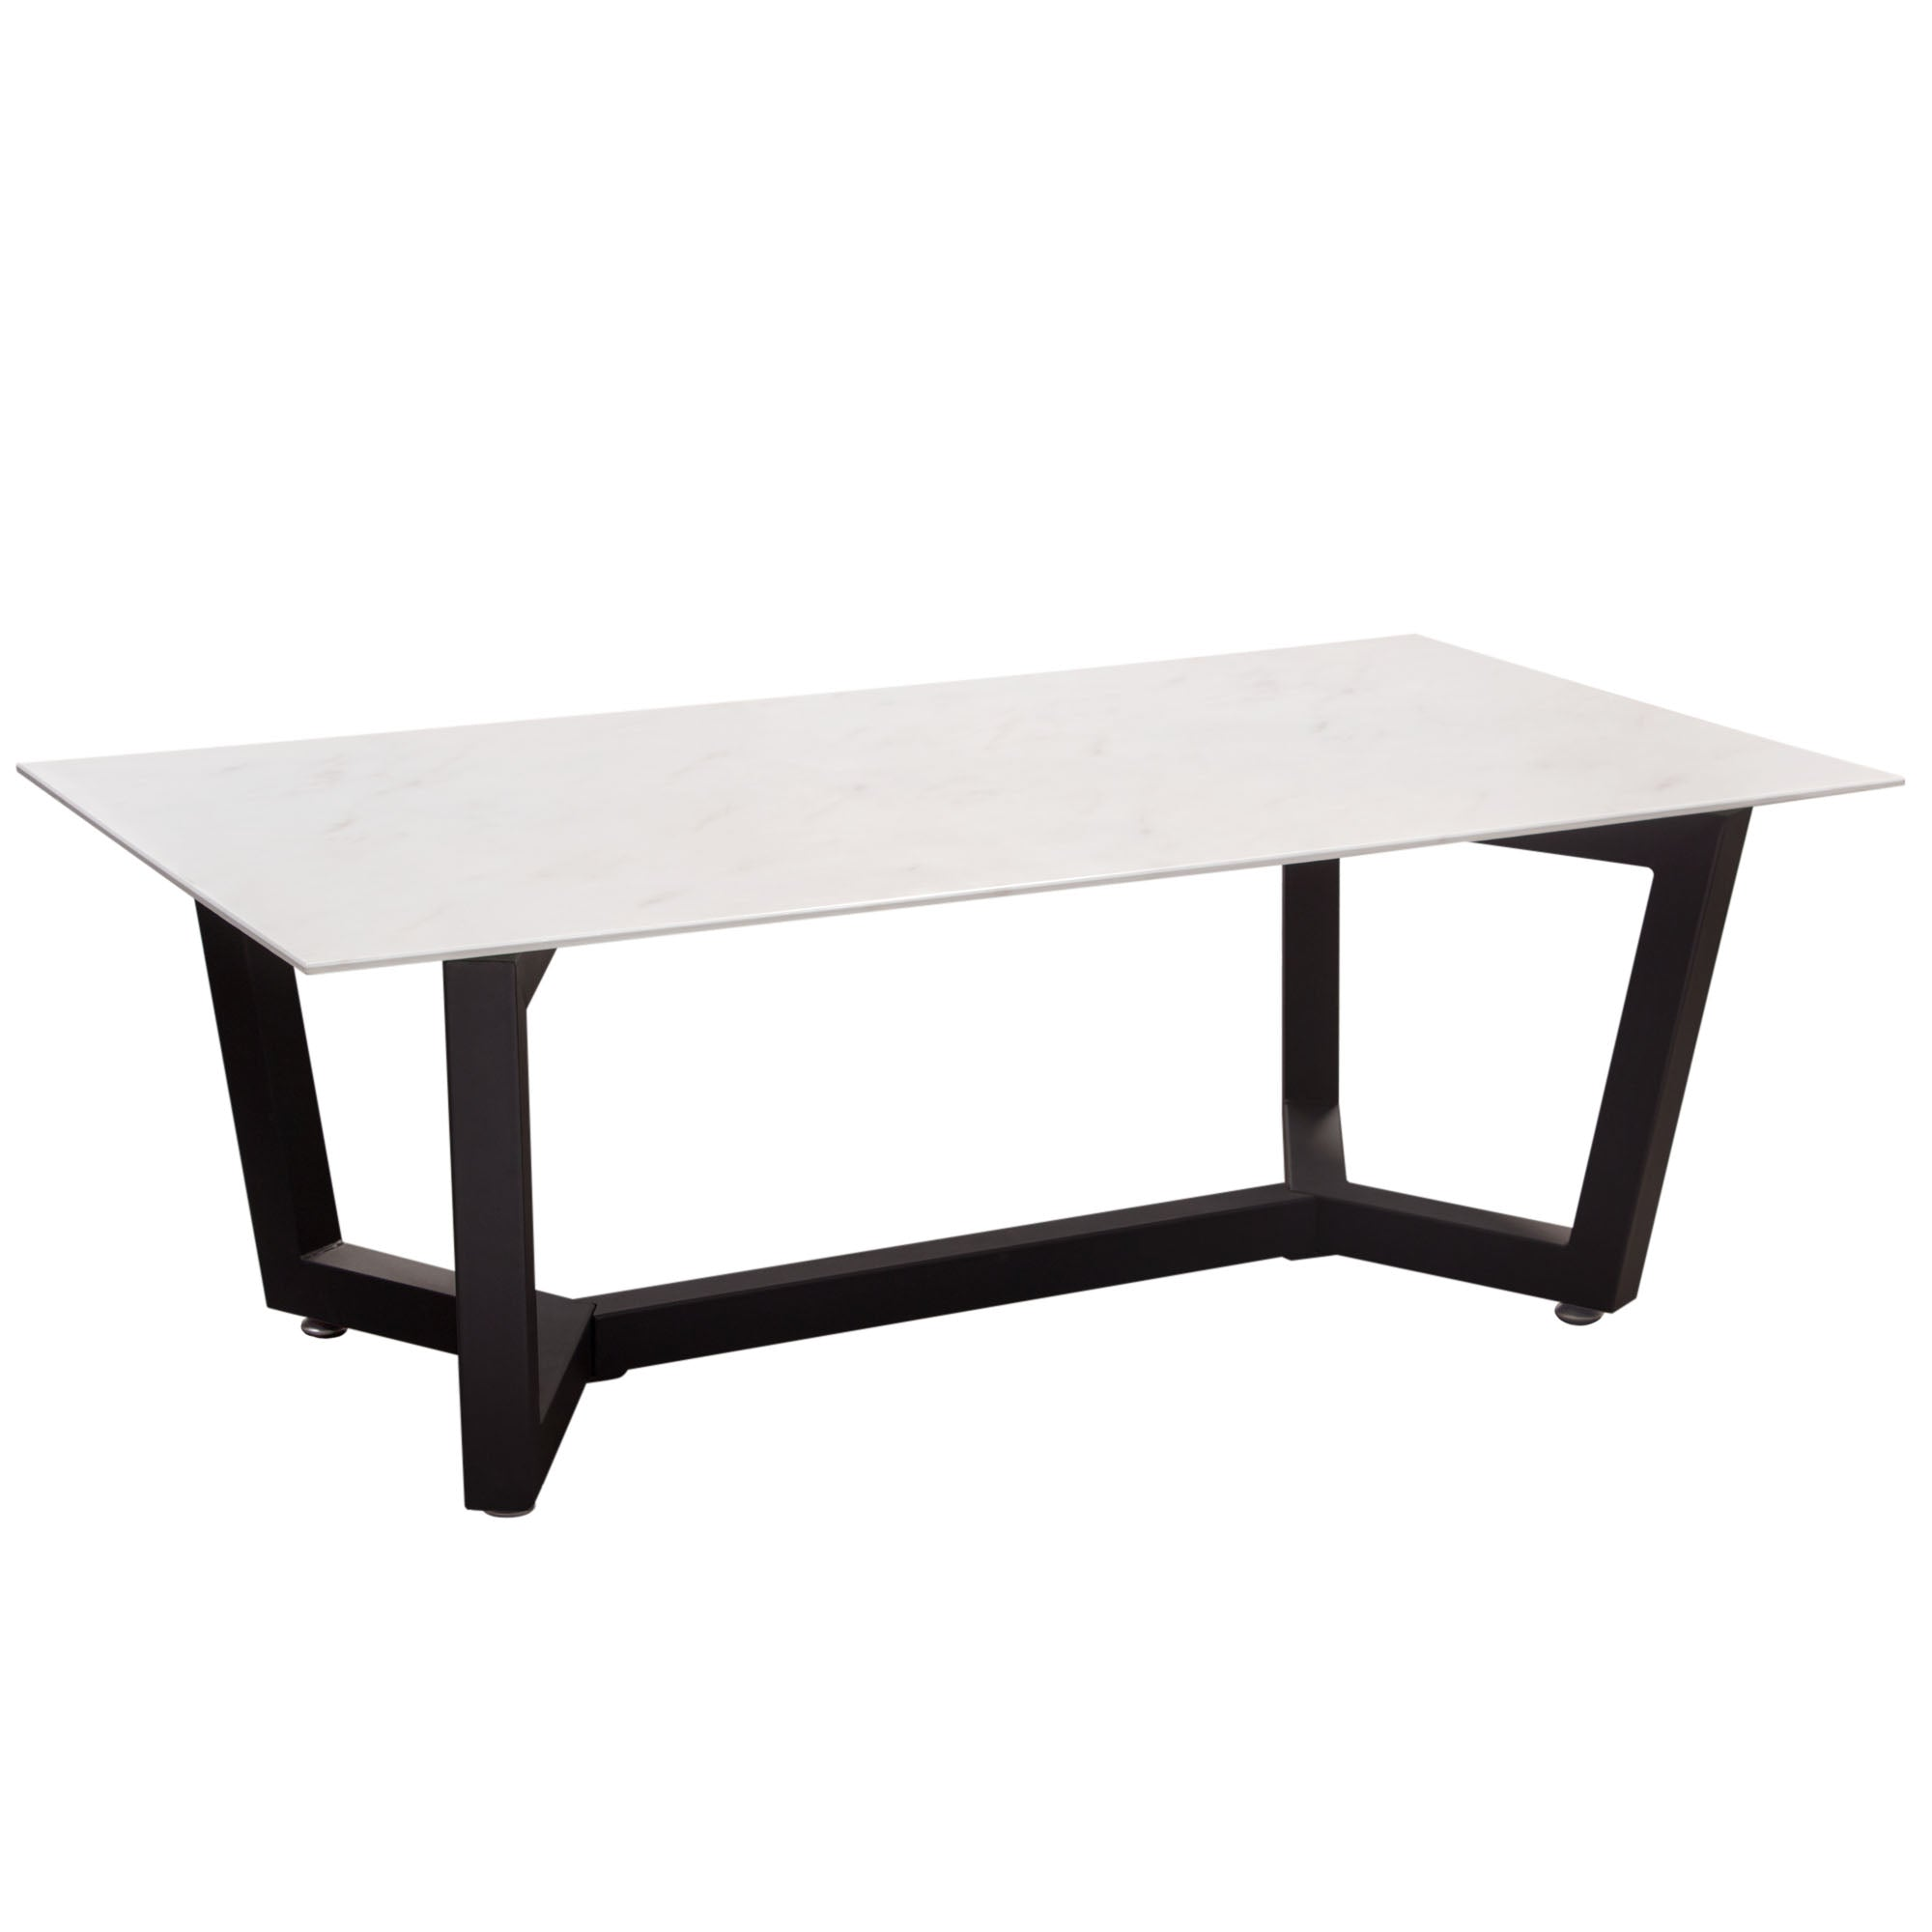 Marble Glass Top Coffee Table: Buy Diamond Sofa CAPLANCTMA Caplan Rectangular Cocktail